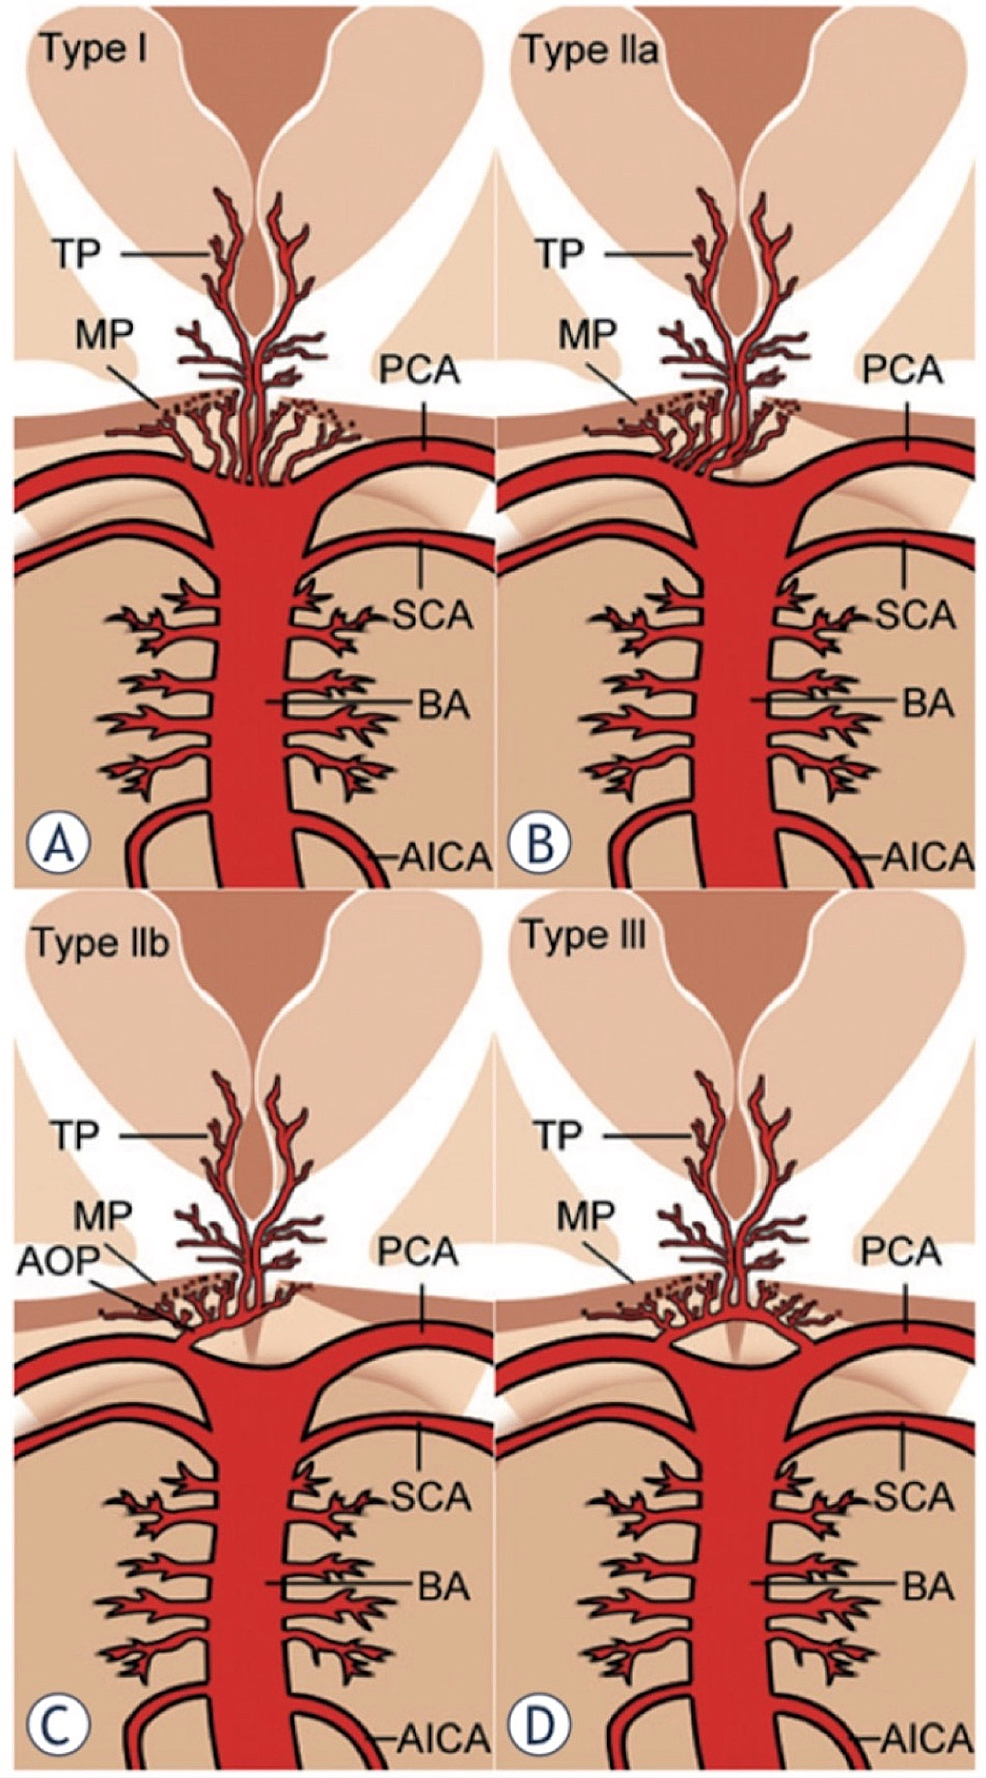 Anatomic-variations-of-the-arterial-supply-to-the-paramedian-thalamic-mesencephalic-region-as-described-by-Percheron.